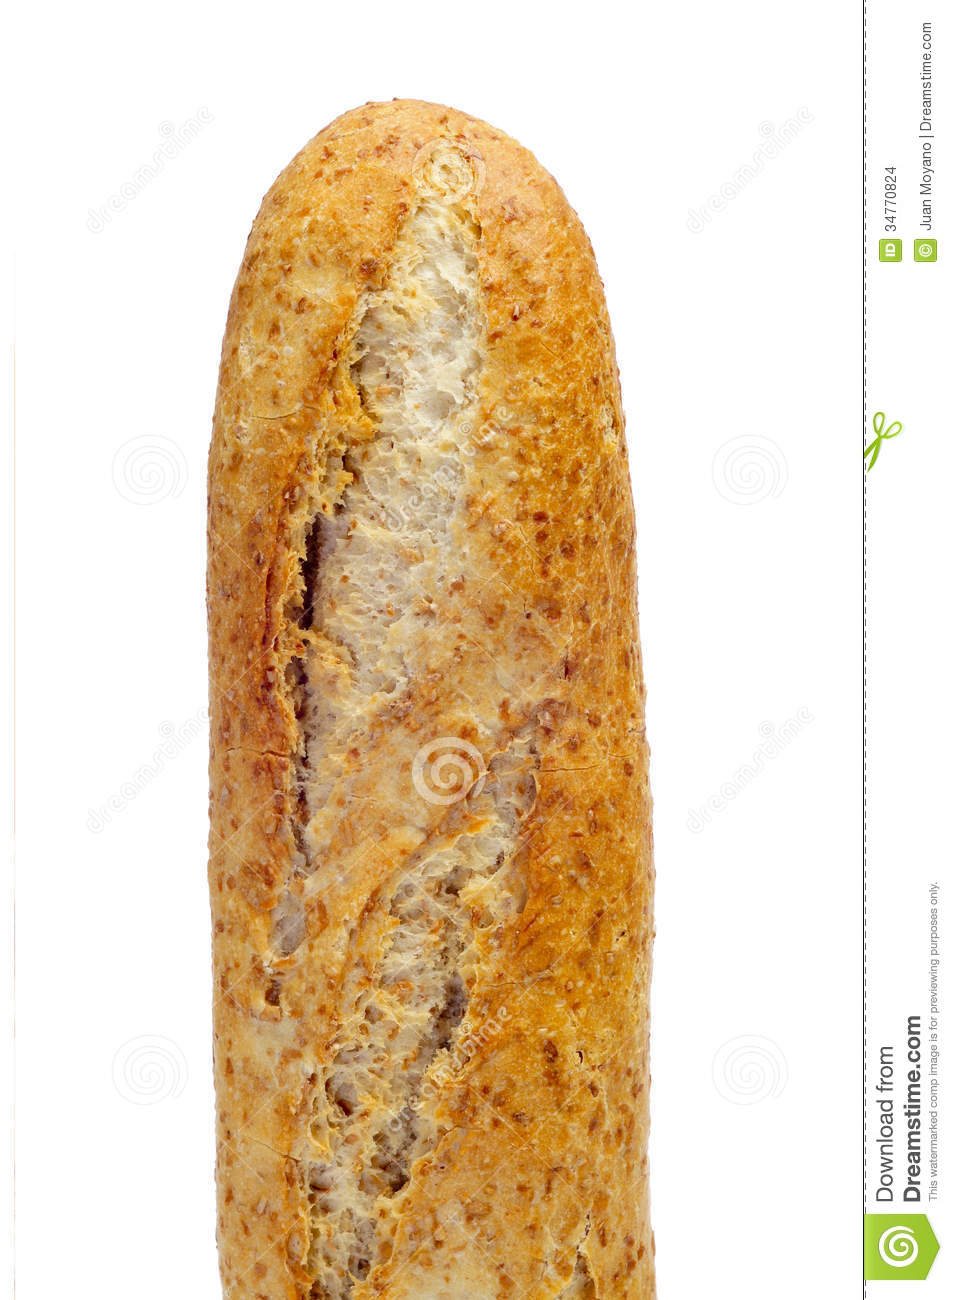 Closeup of a whole wheat baguette on a white background.